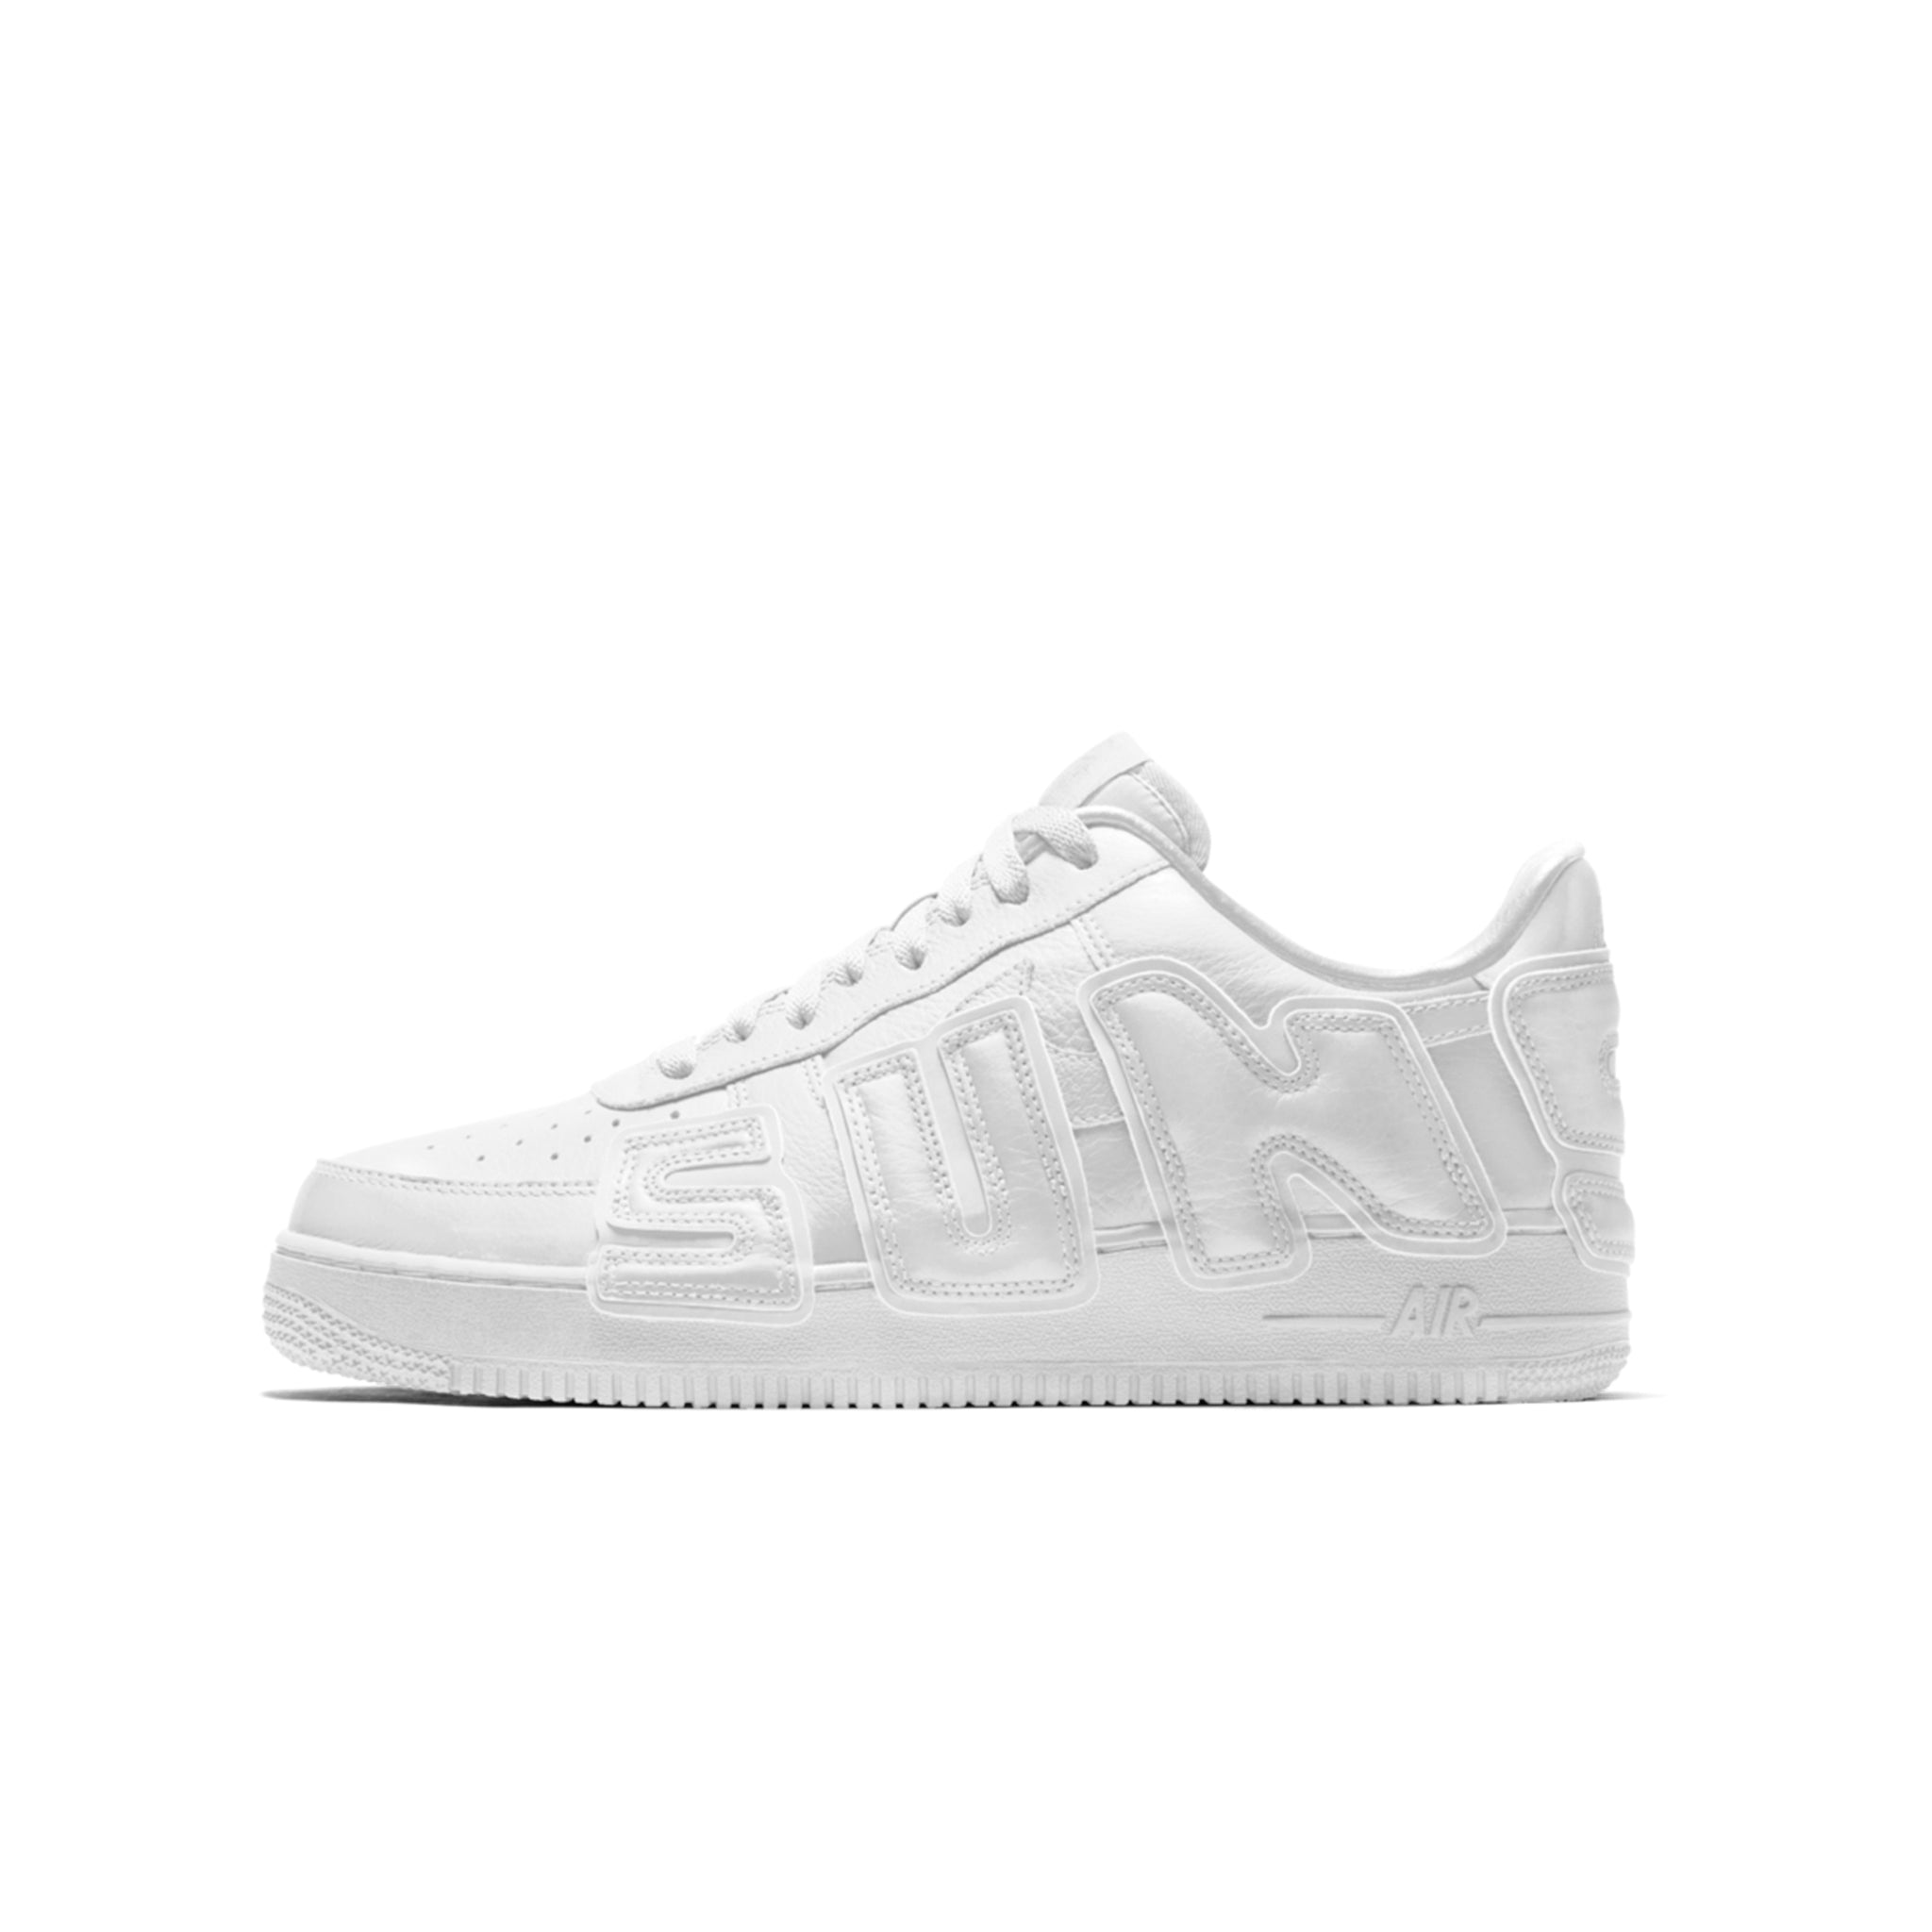 CPFM x Nike Air Force 1 White Red– Re